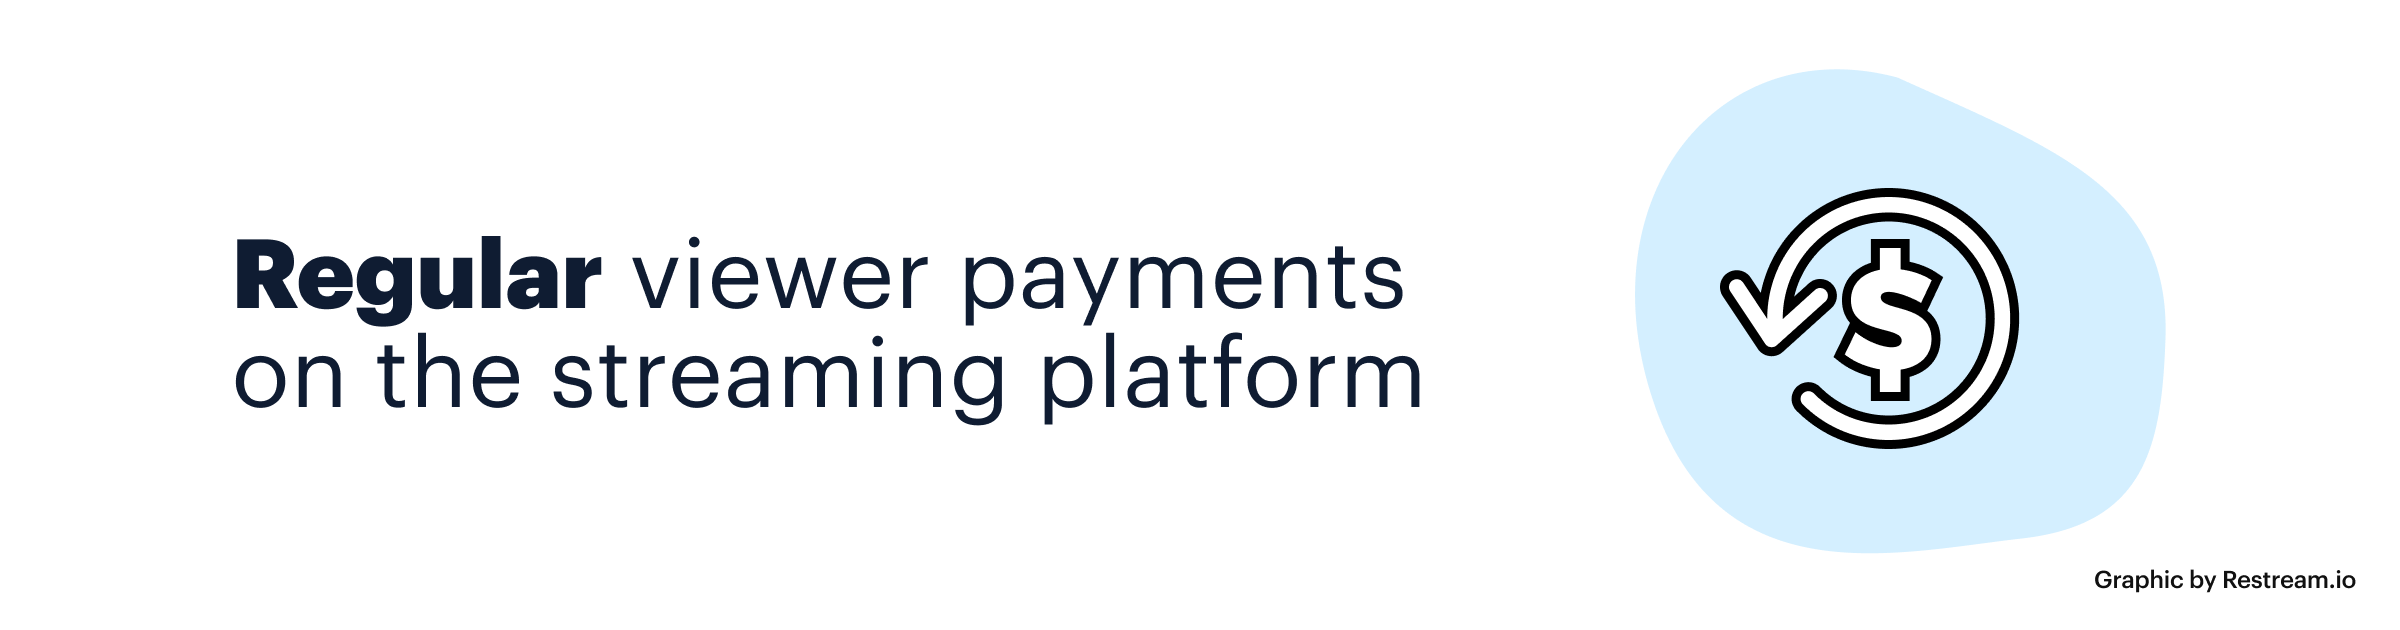 Regular viewer payments on the streaming platform